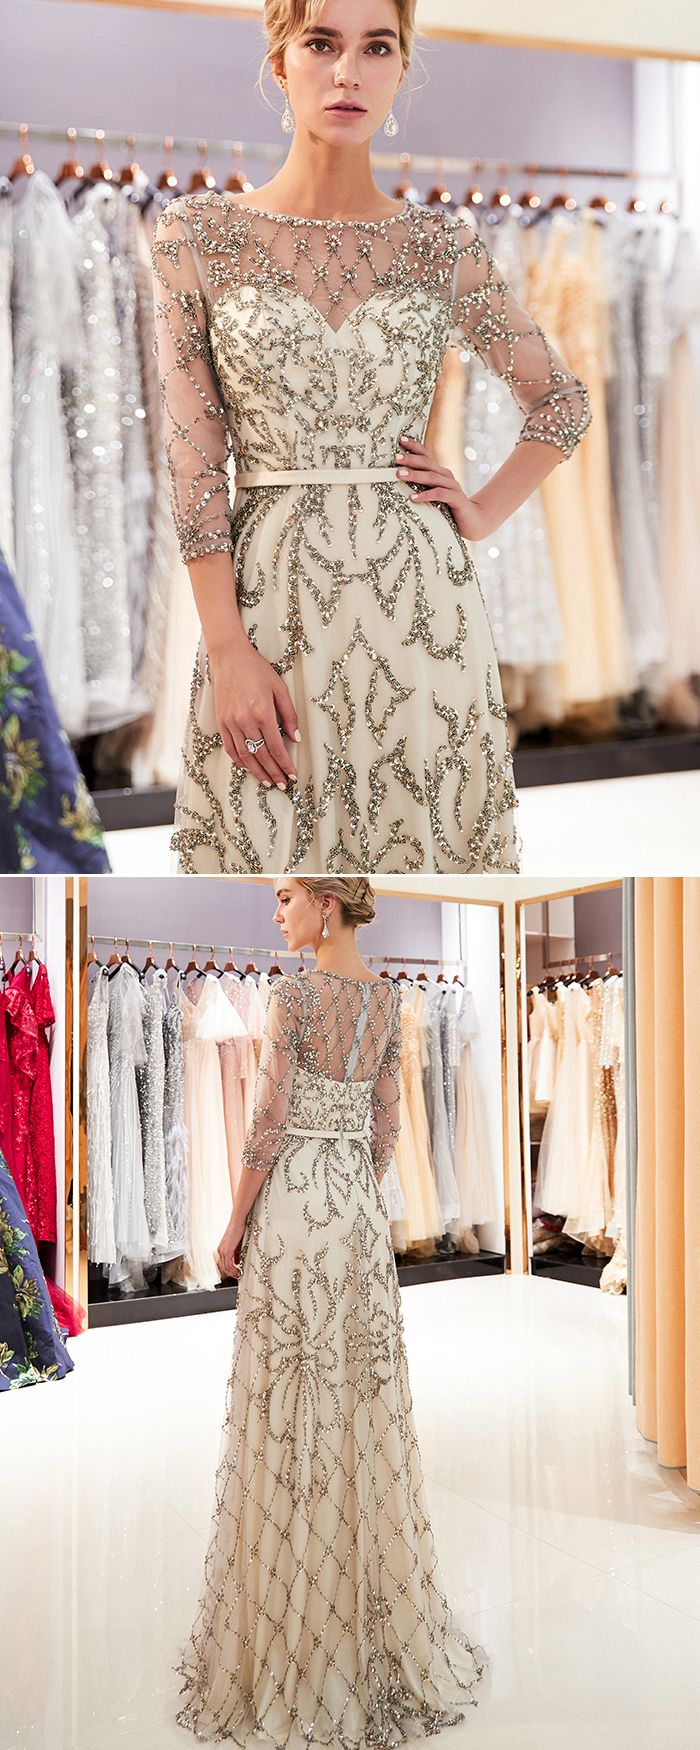 Jewel Neck Champagne Floral Beading Evening Dress With 3 4 Length Sleeves Qd025 Bridesmaid Dresses Long Champagne Evening Dresses Champagne Dresses Long [ 1750 x 700 Pixel ]